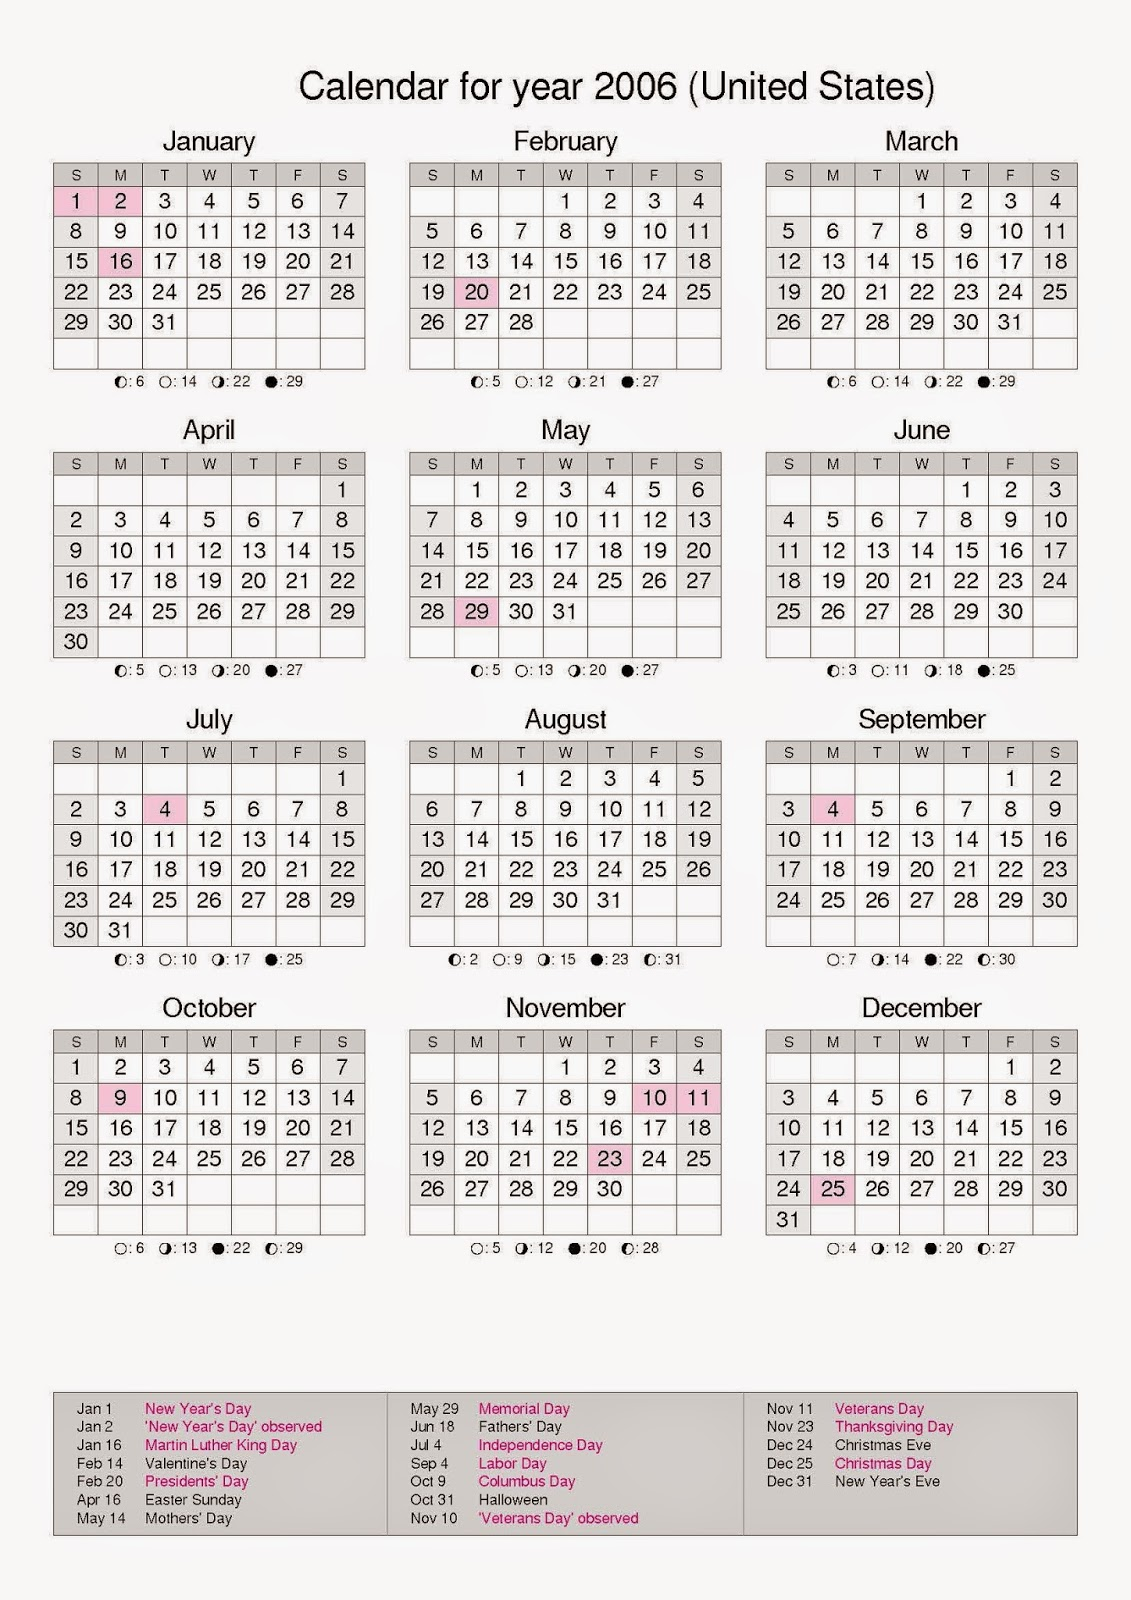 Calendar for Year 2006 United States | United States Calendar